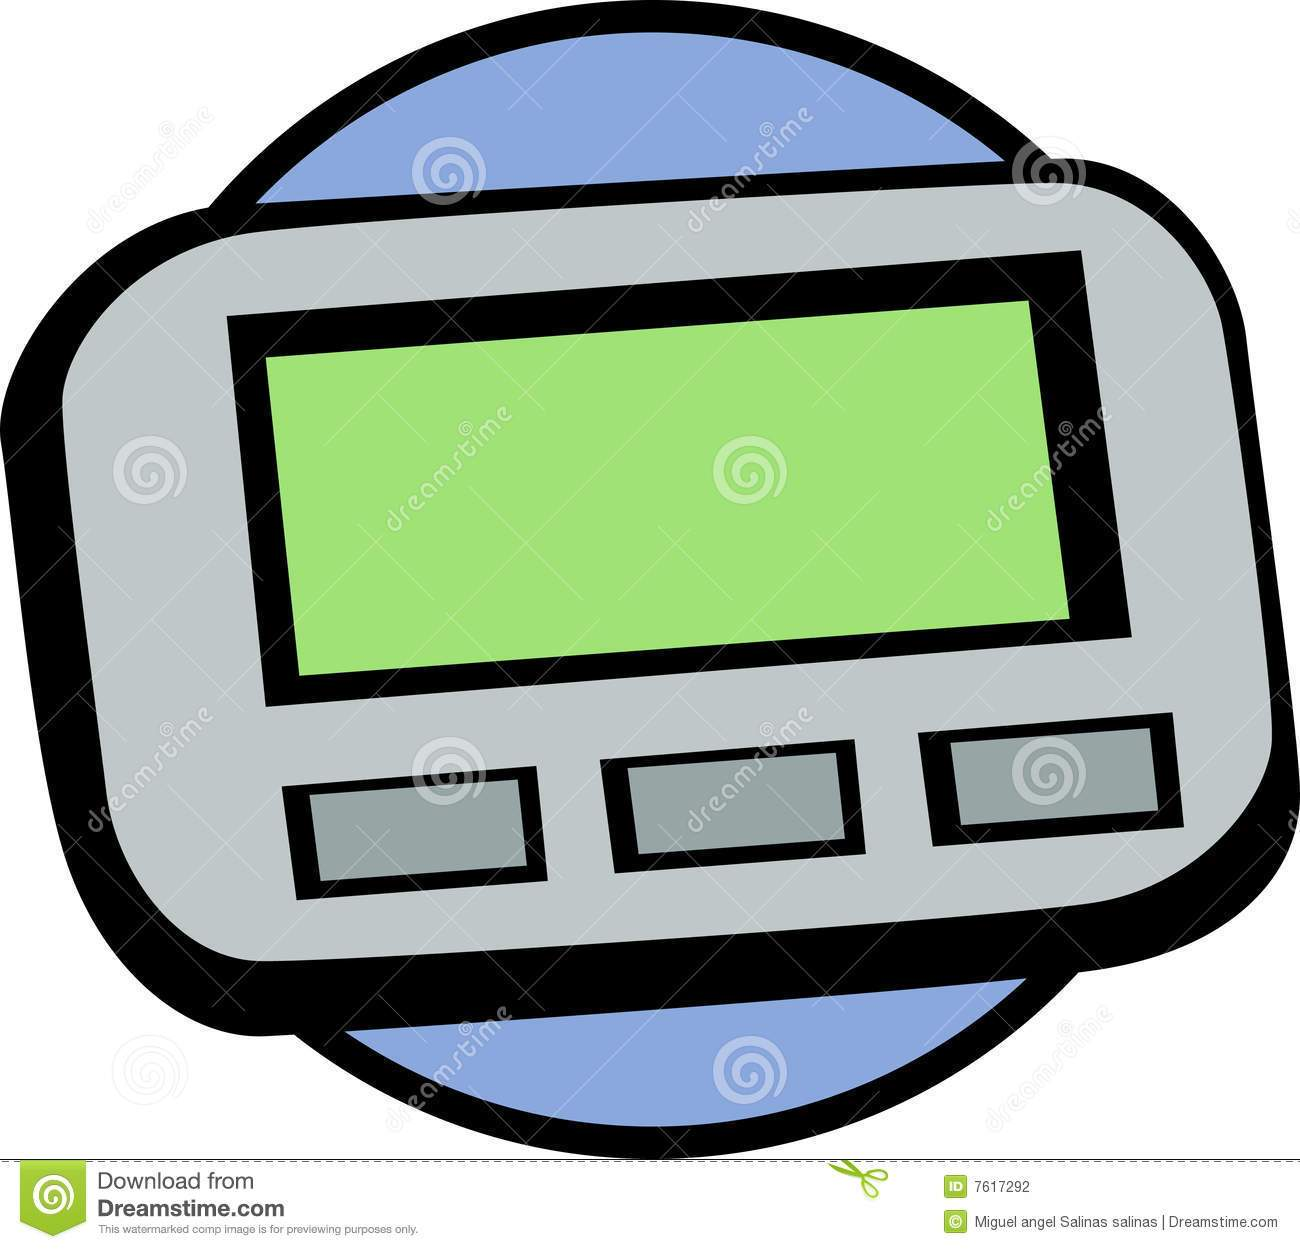 Pager clipart 2 » Clipart Portal.